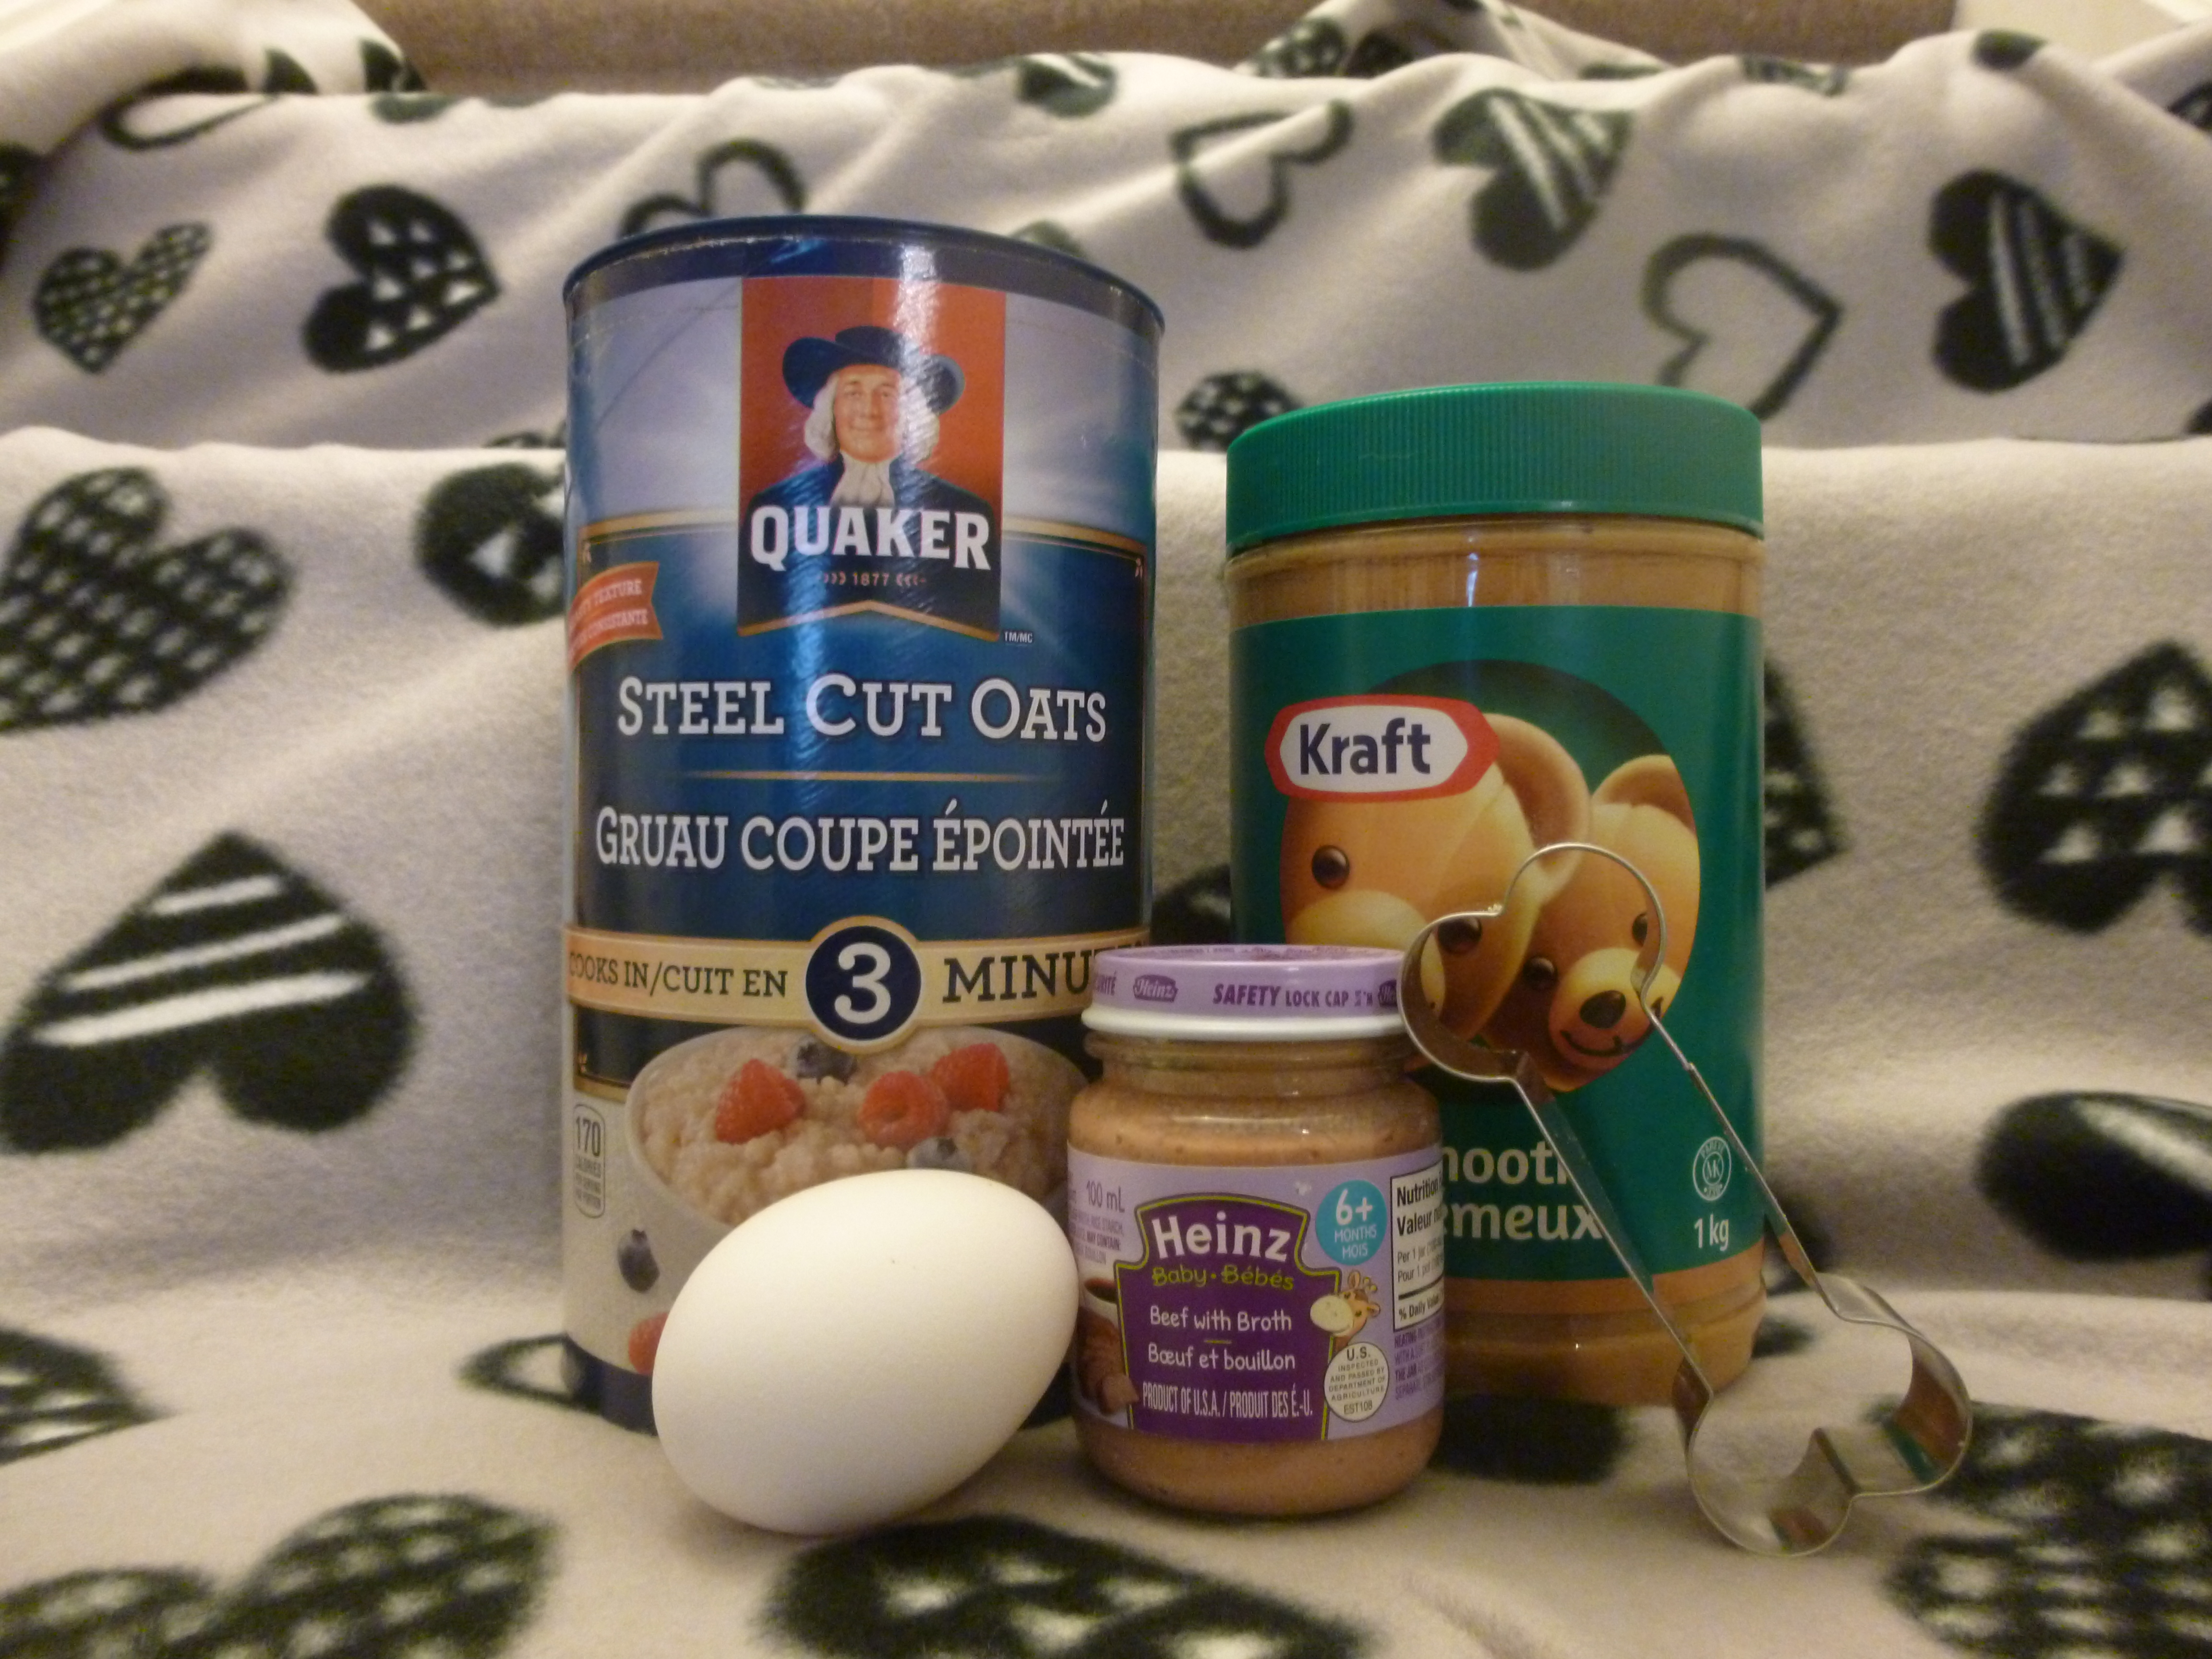 oats, peanut butter, an egg and baby food jar - all ingredients for dog treat recipe